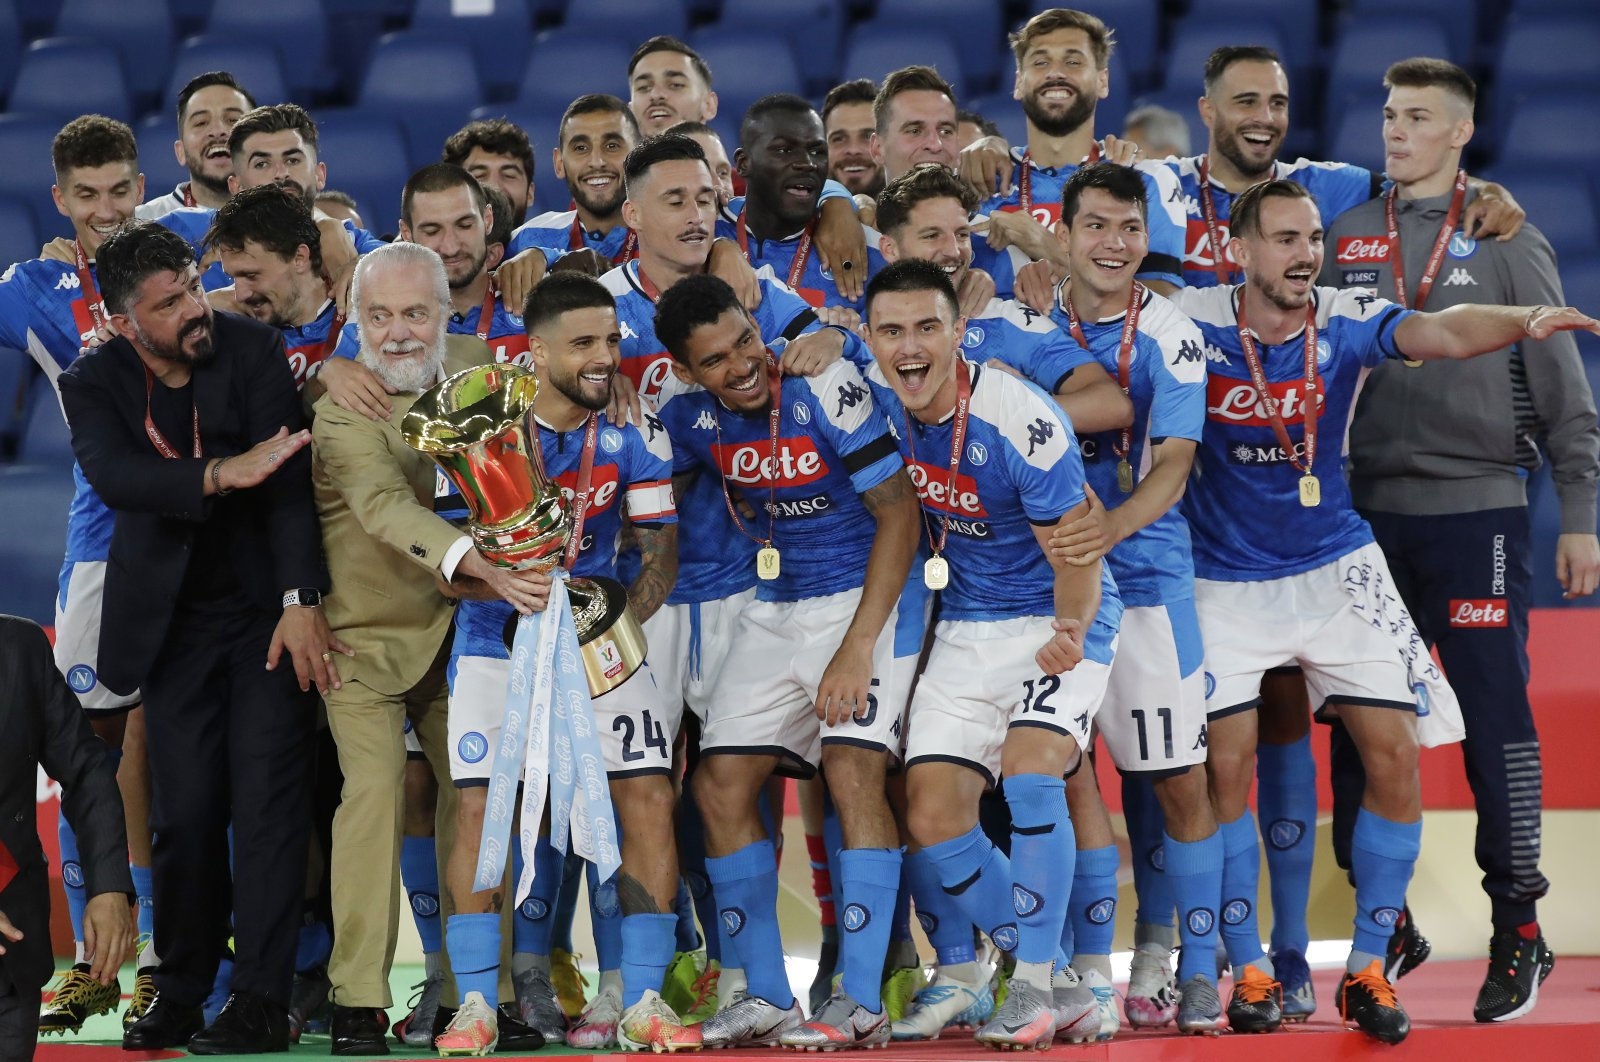 Napoli's Lorenzo Insigne holds up the Italian Cup trophy at the end of the final match between Napoli and Juventus, at Rome's Olympic stadium, Italy, June 17, 2020. (AP Photo)